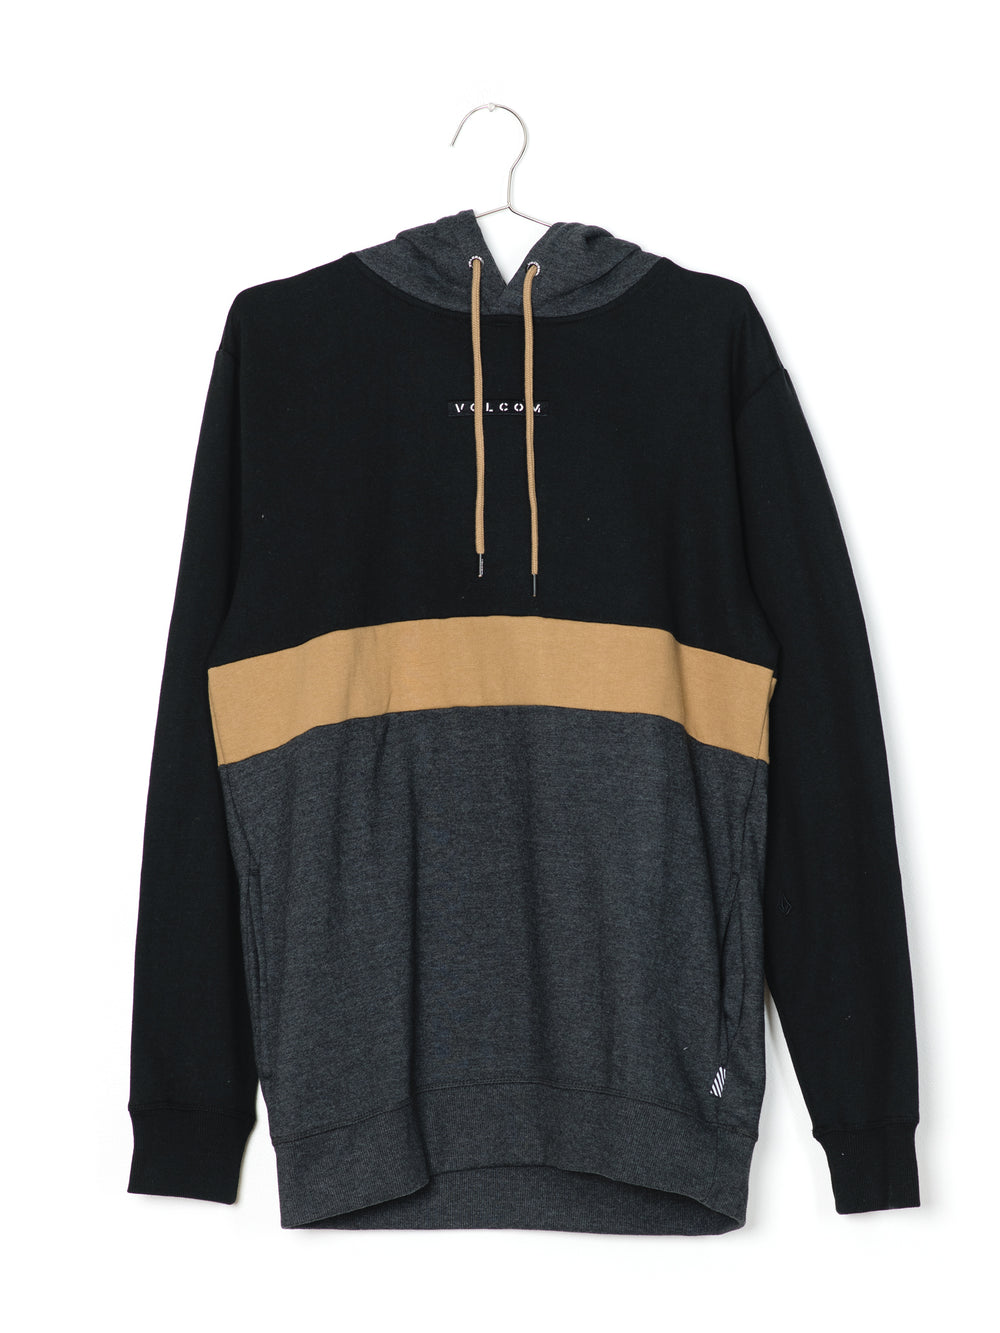 MENS SINGLE STONE DIV PULL OVER HD - SUD